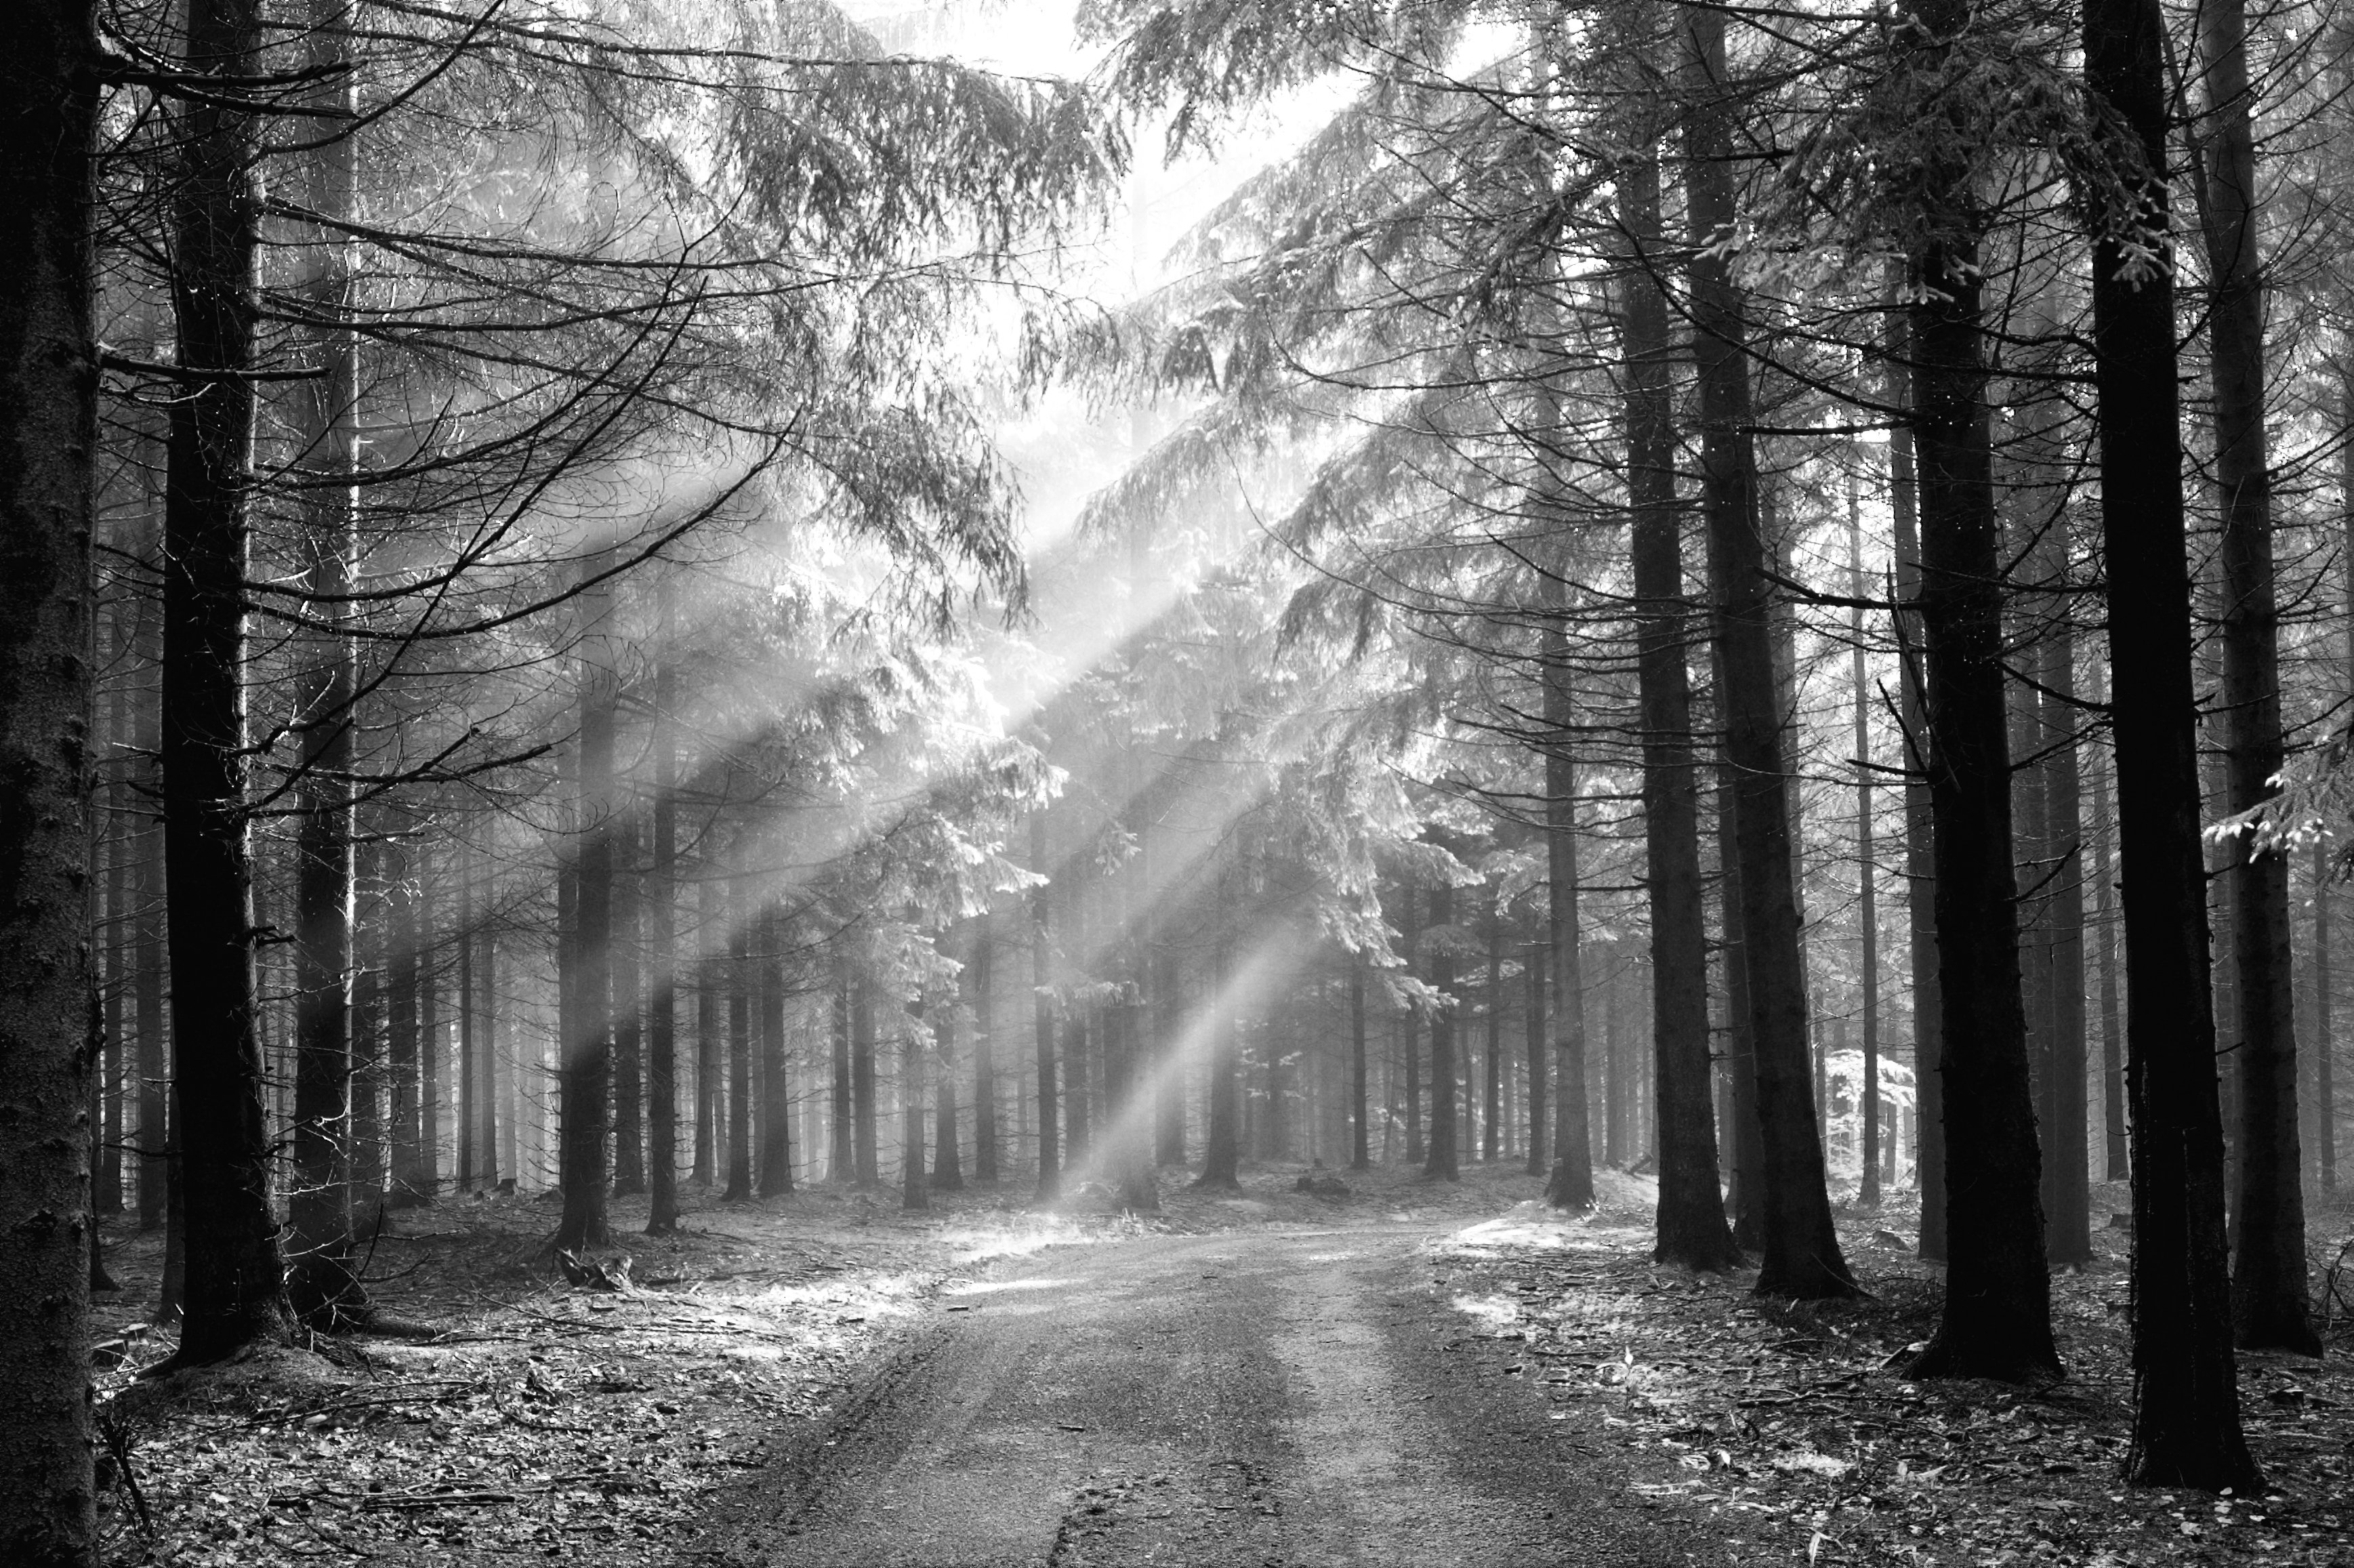 Black and white forest wallpaper wallpapersafari for Black and white forest wall mural